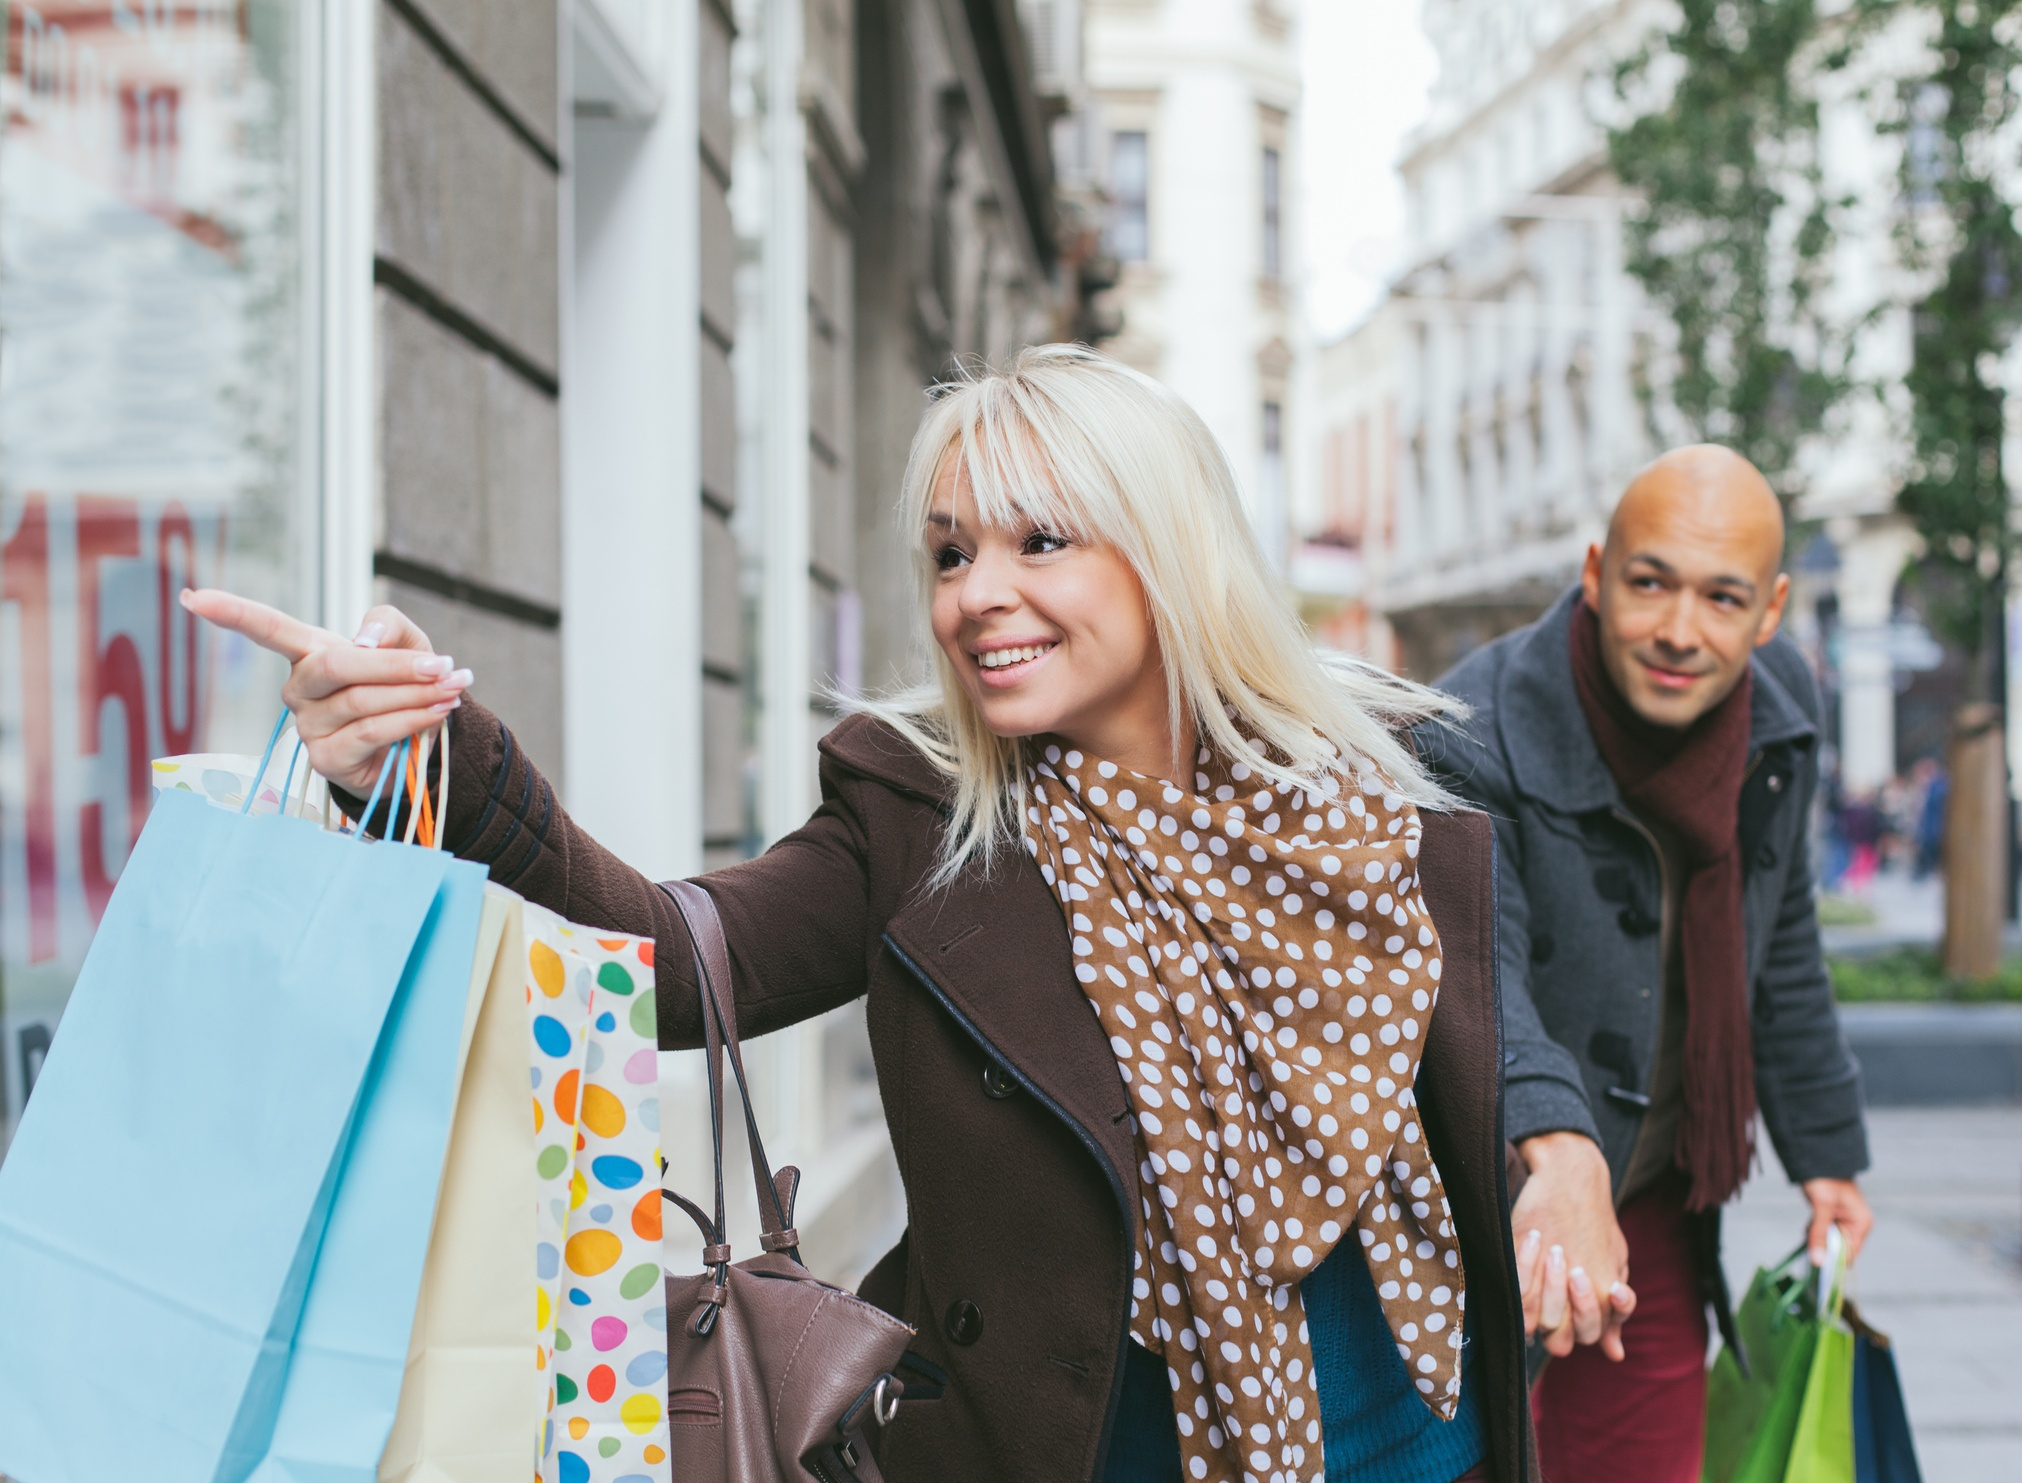 Smiling woman with shopping bags holding man's hand and pointing